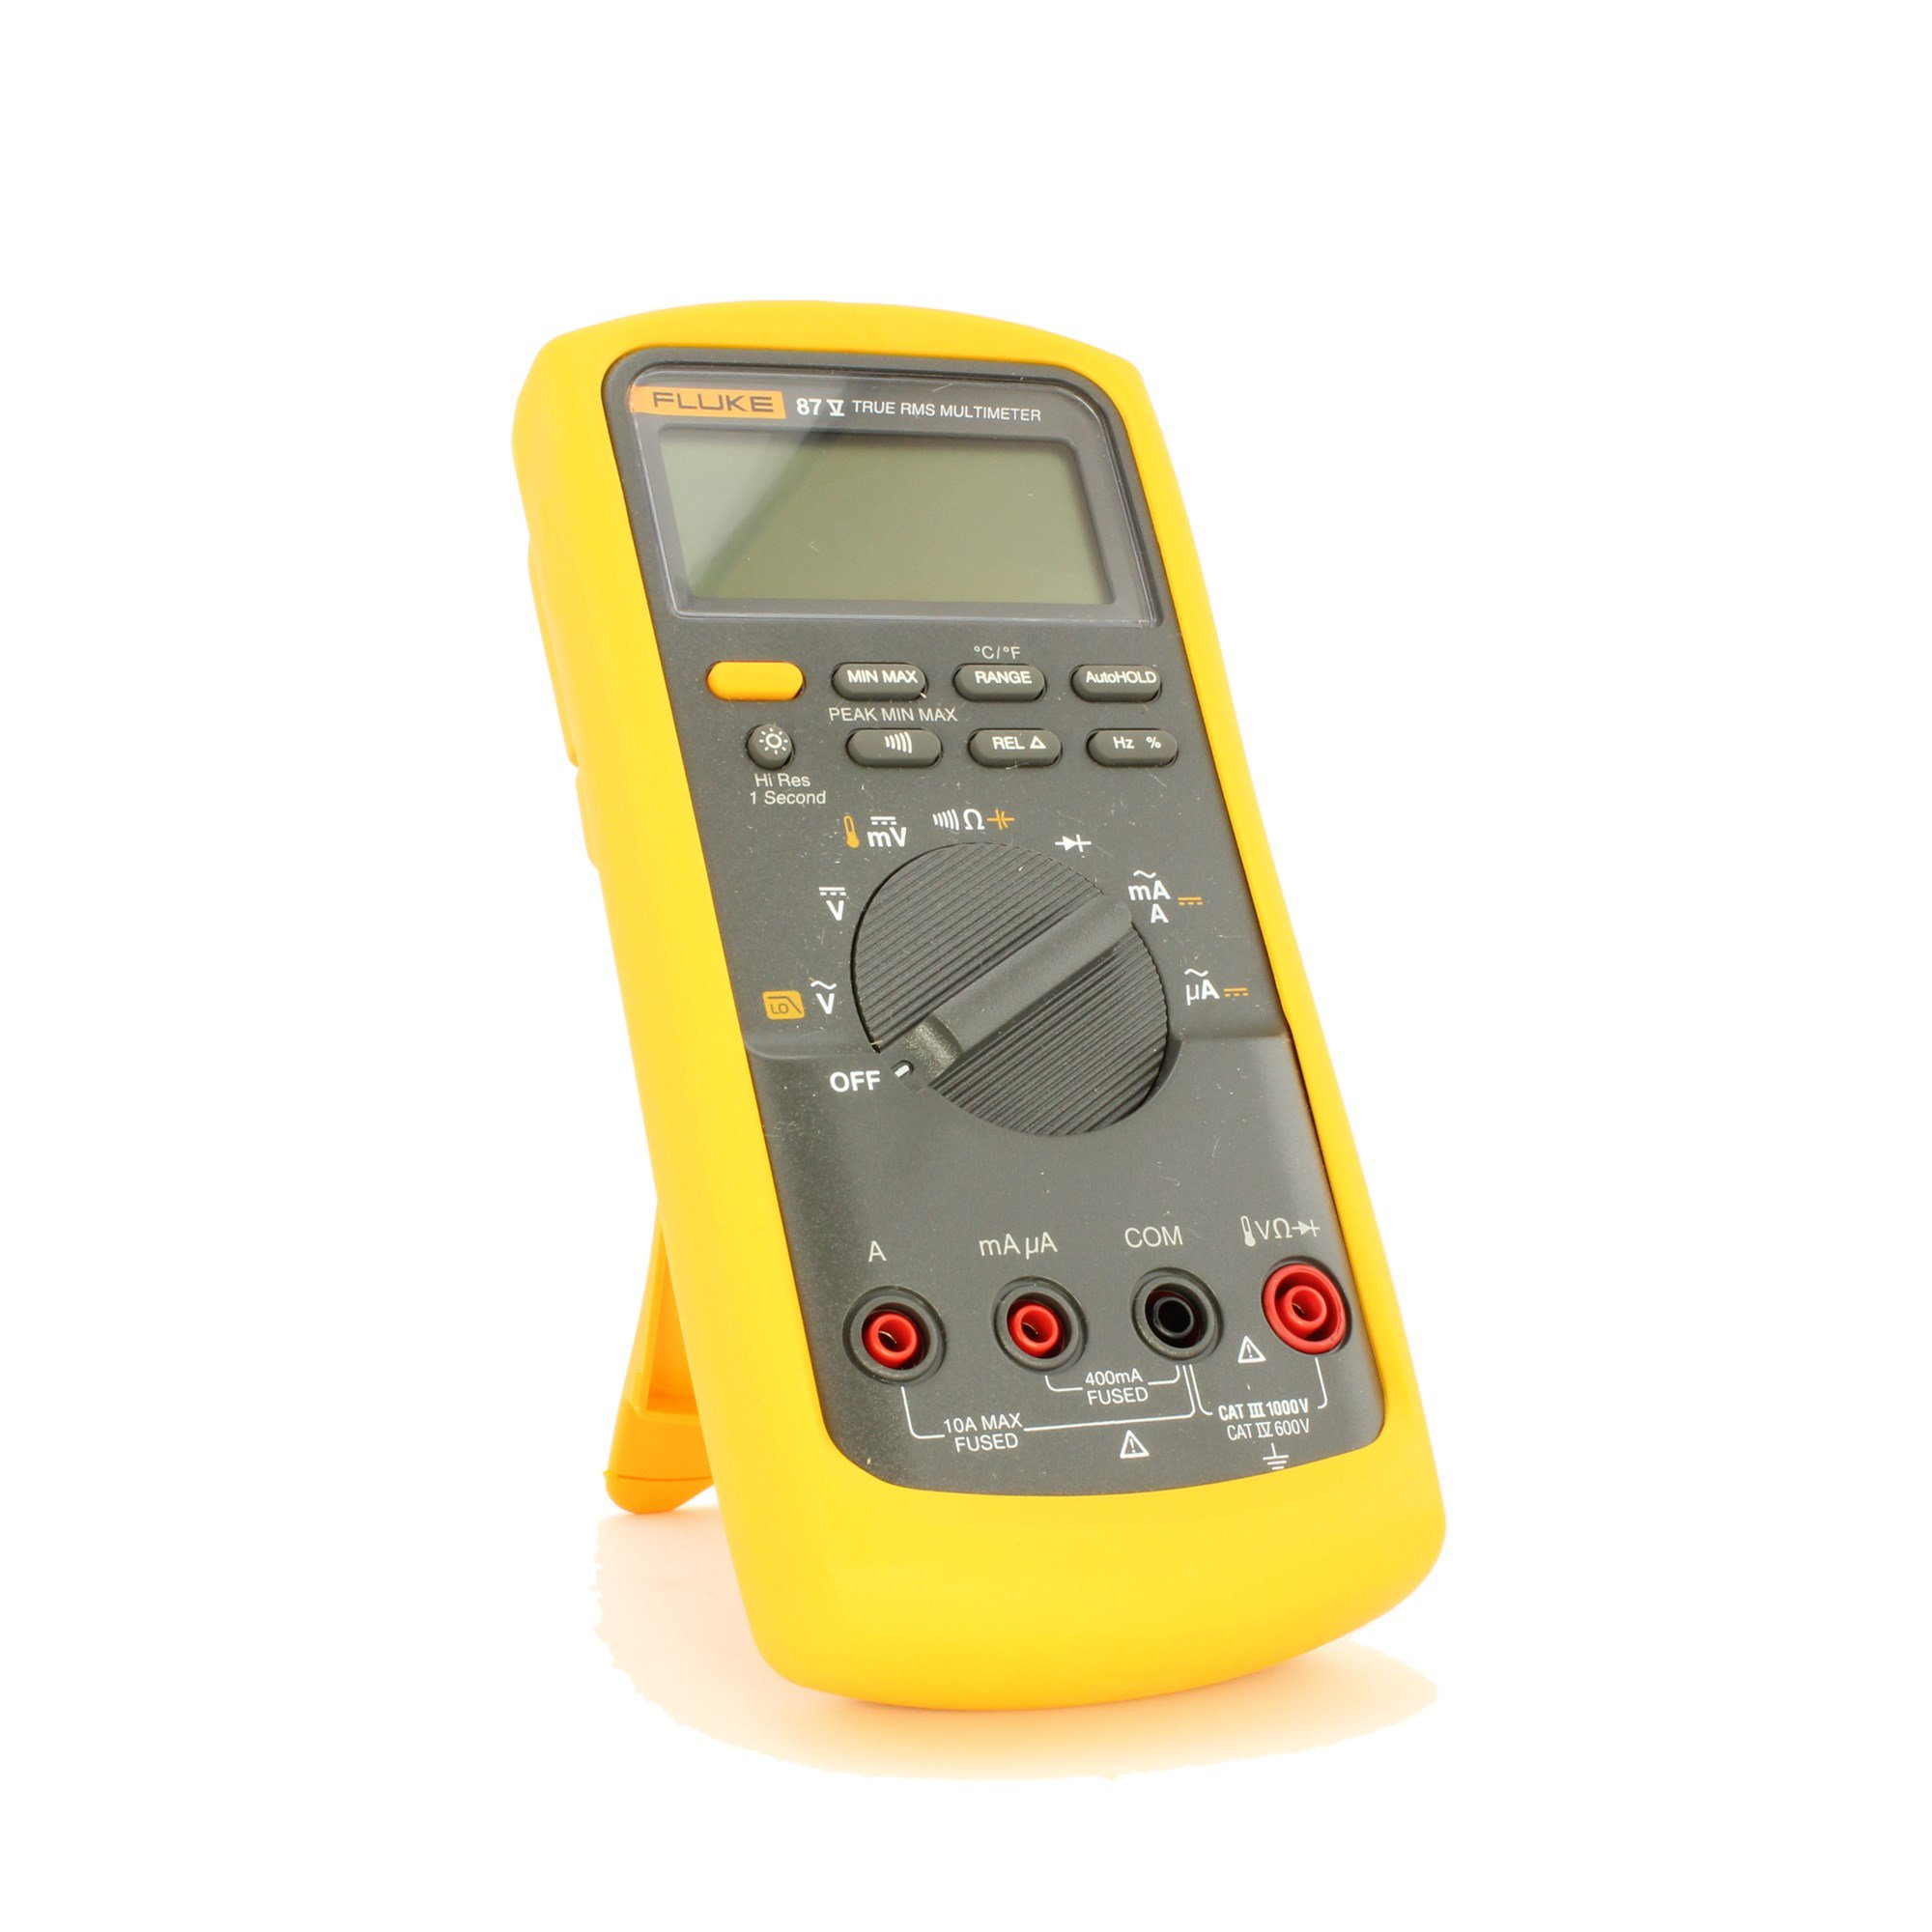 Fluke 87 5 Digital Multimeter V Amp Meter For My Rig This Allows You To Use The One Panel